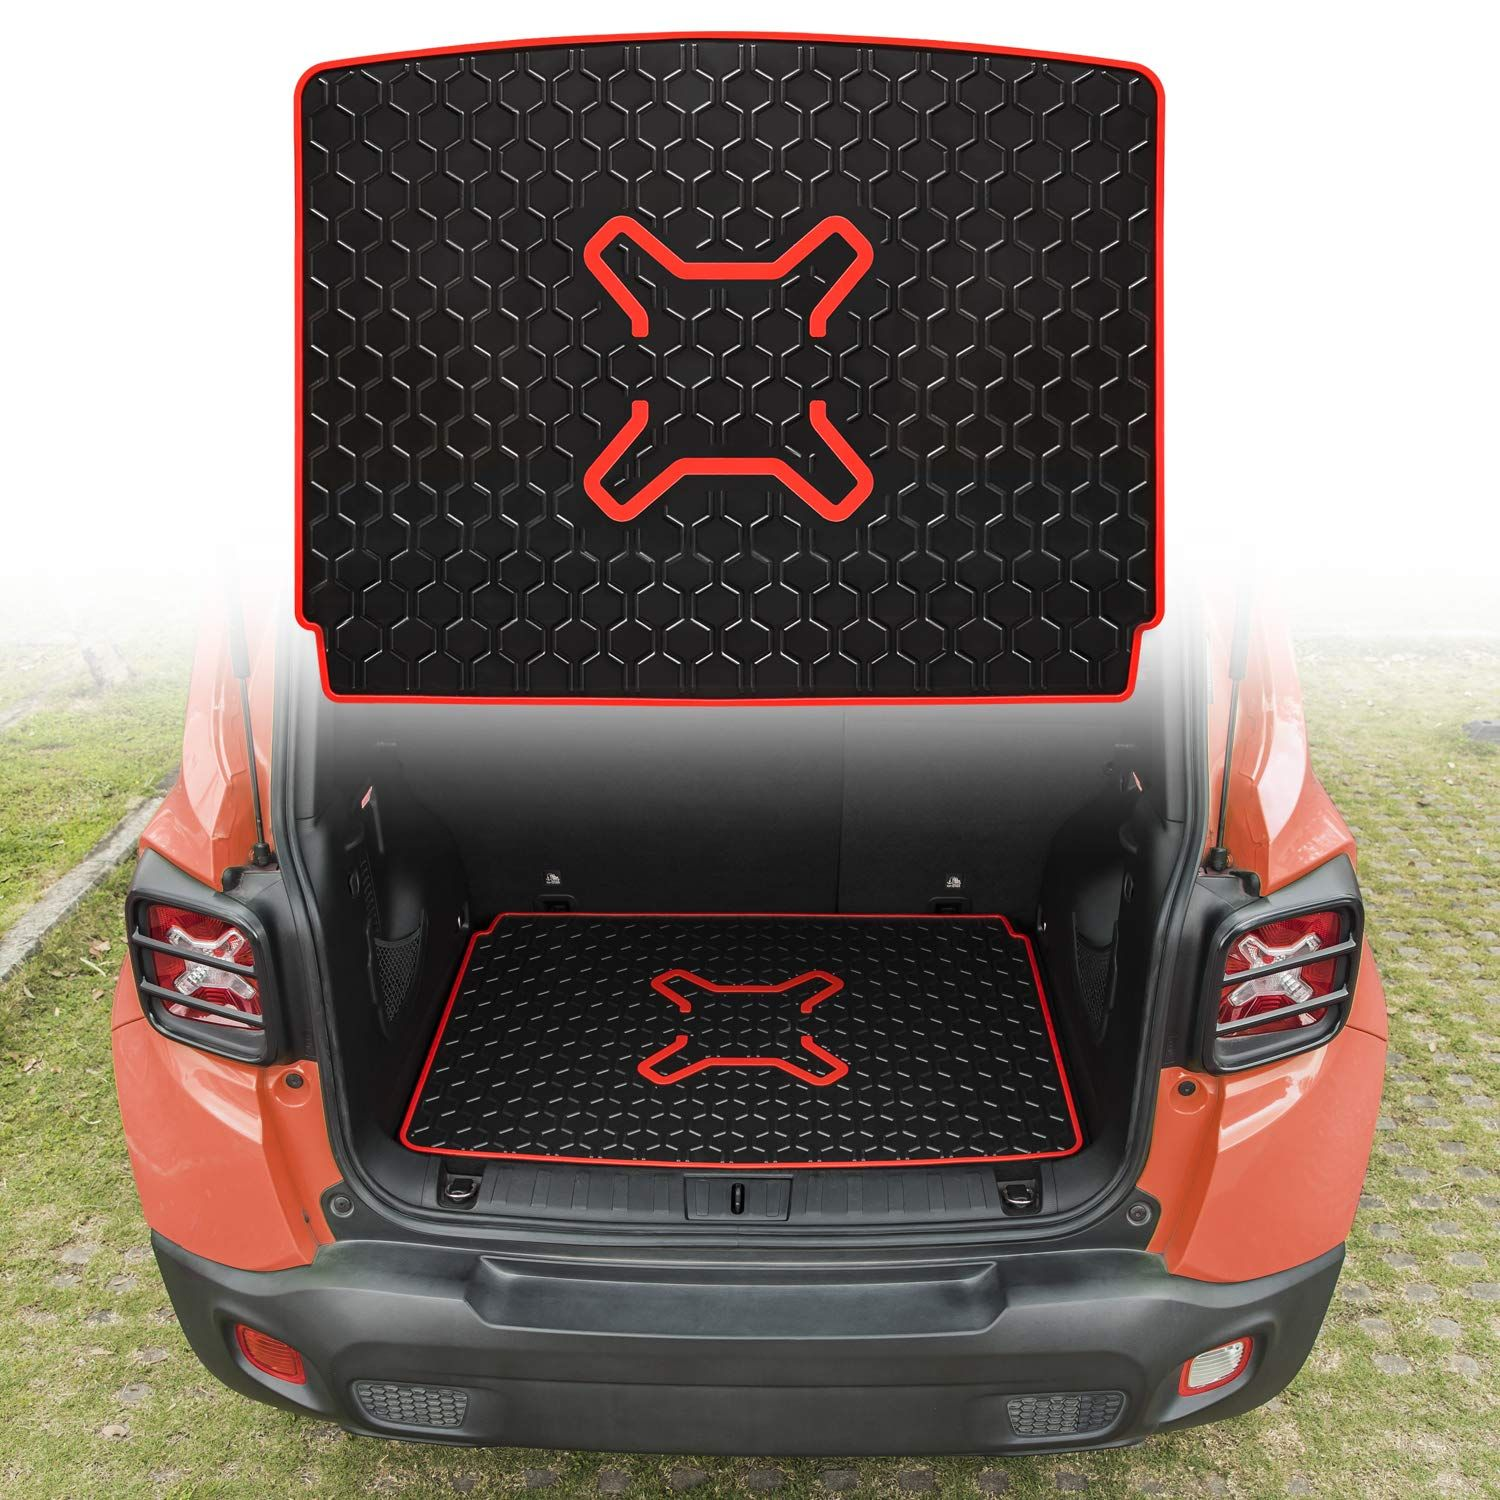 Danti Rubber Cargo Liner Rear Cargo Tray Trunk Floor Mat Protector For 2016 2017 2018 2019 Jeep Renegade See This Great Pro In 2020 Cargo Liner Jeep Renegade Liner